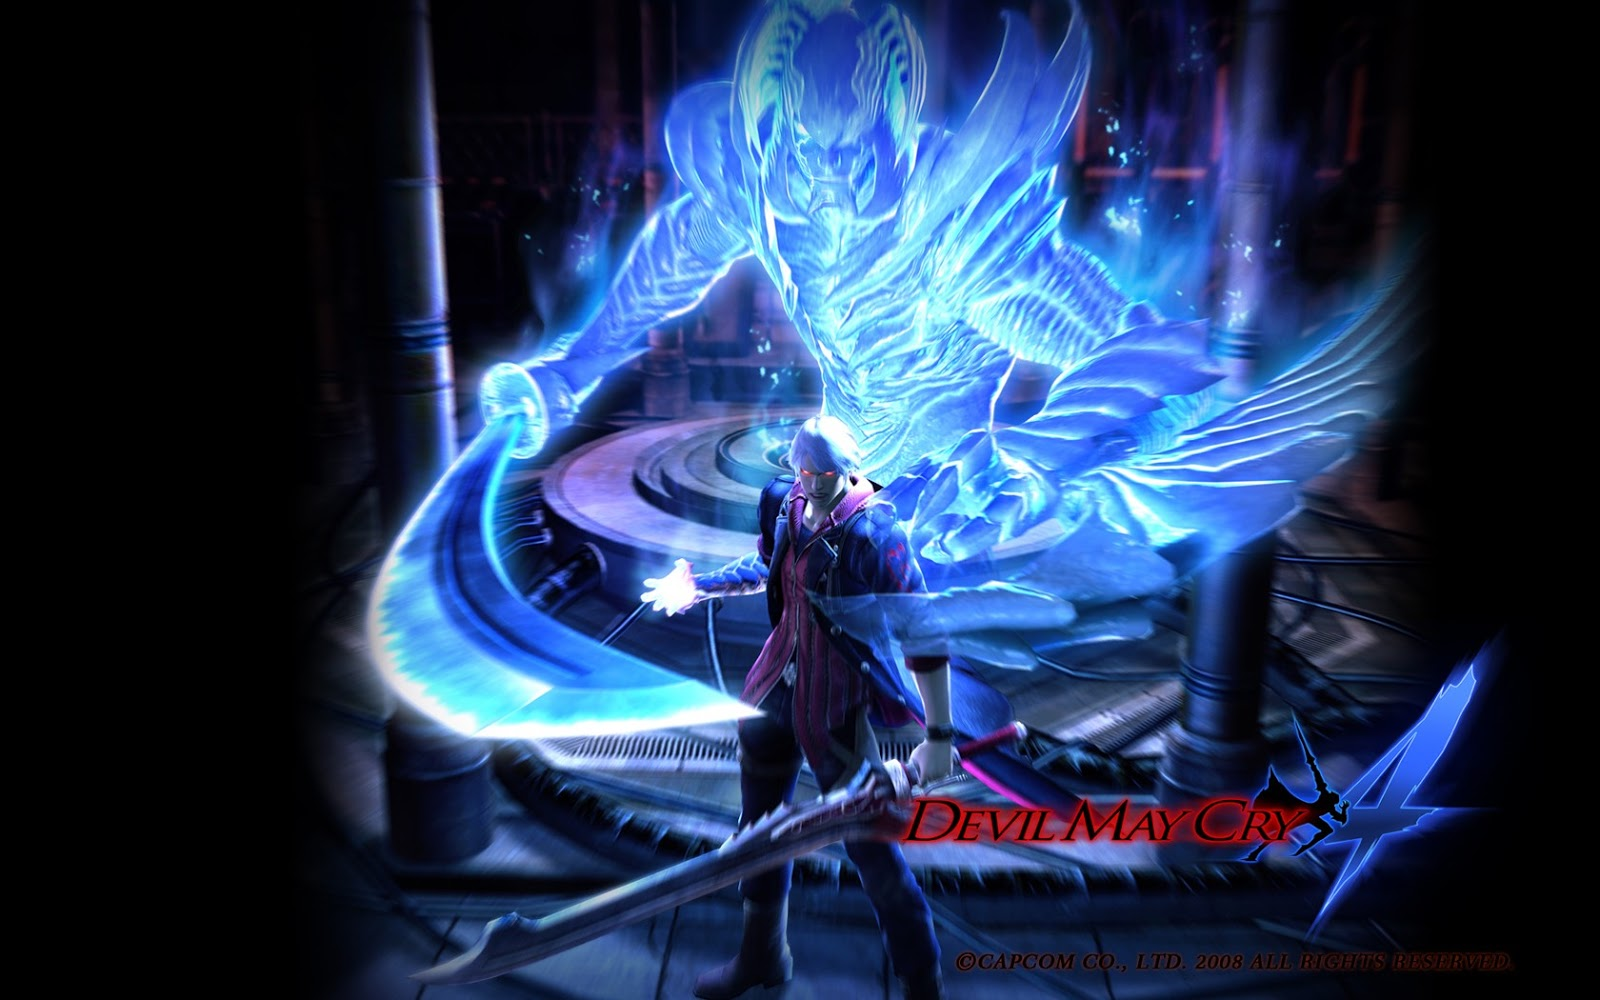 Manga And Anime Wallpapers Devil May Cry 4 HD Wallpaper 1600x1000